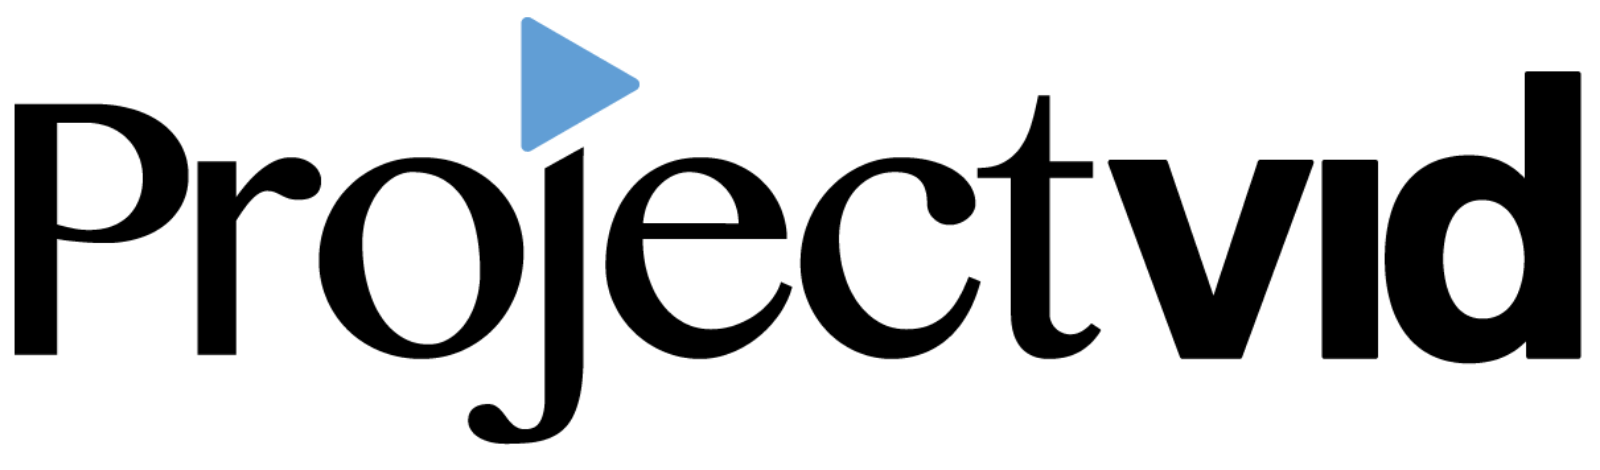 ProjectVid_LOGO.png